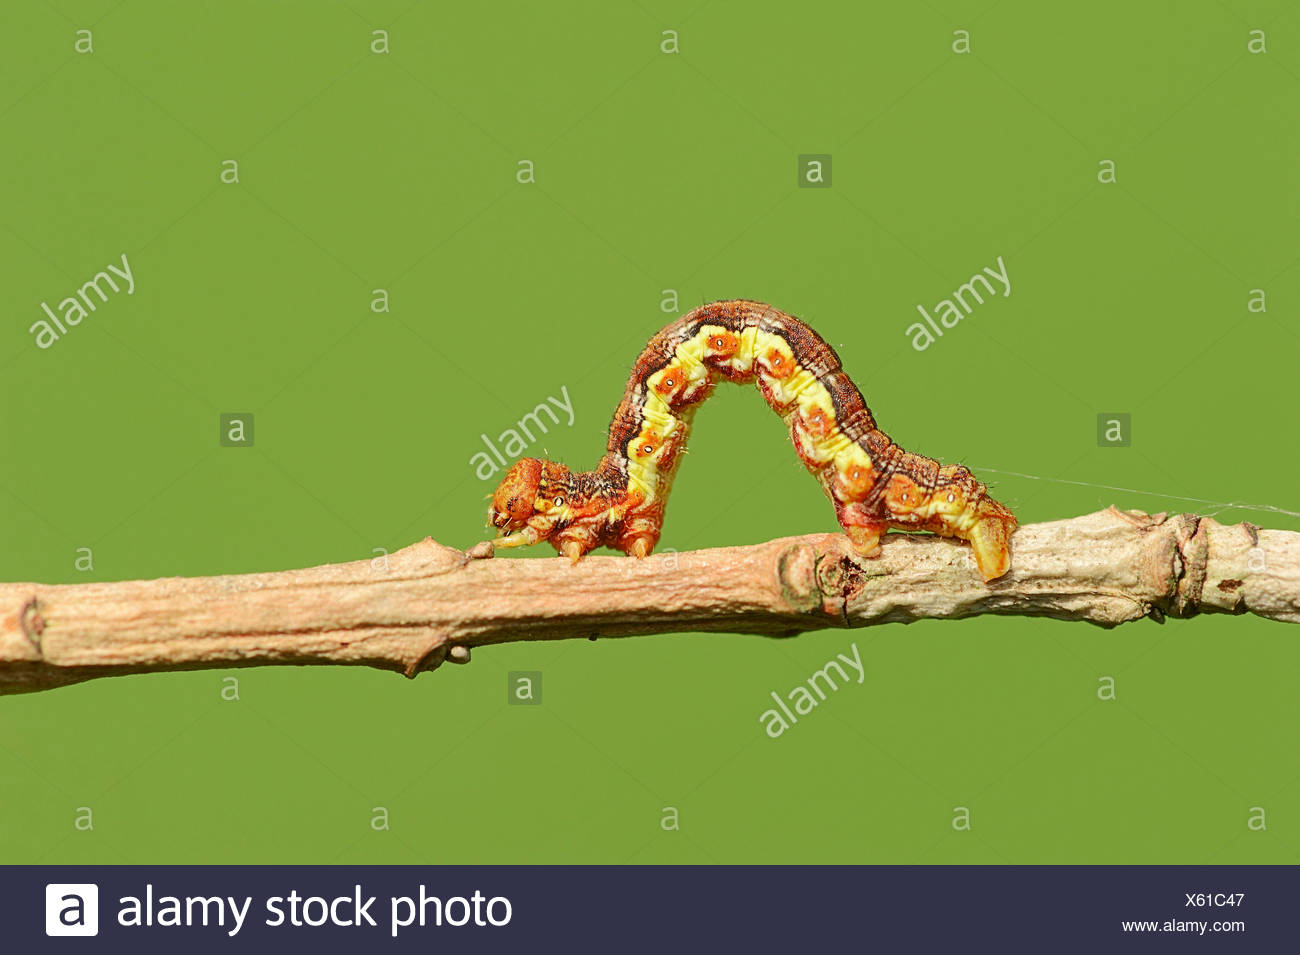 Caterpillar, Great Winter Moth (Erannis defoliaria), North Rhine-Westphalia, Germany - Stock Image